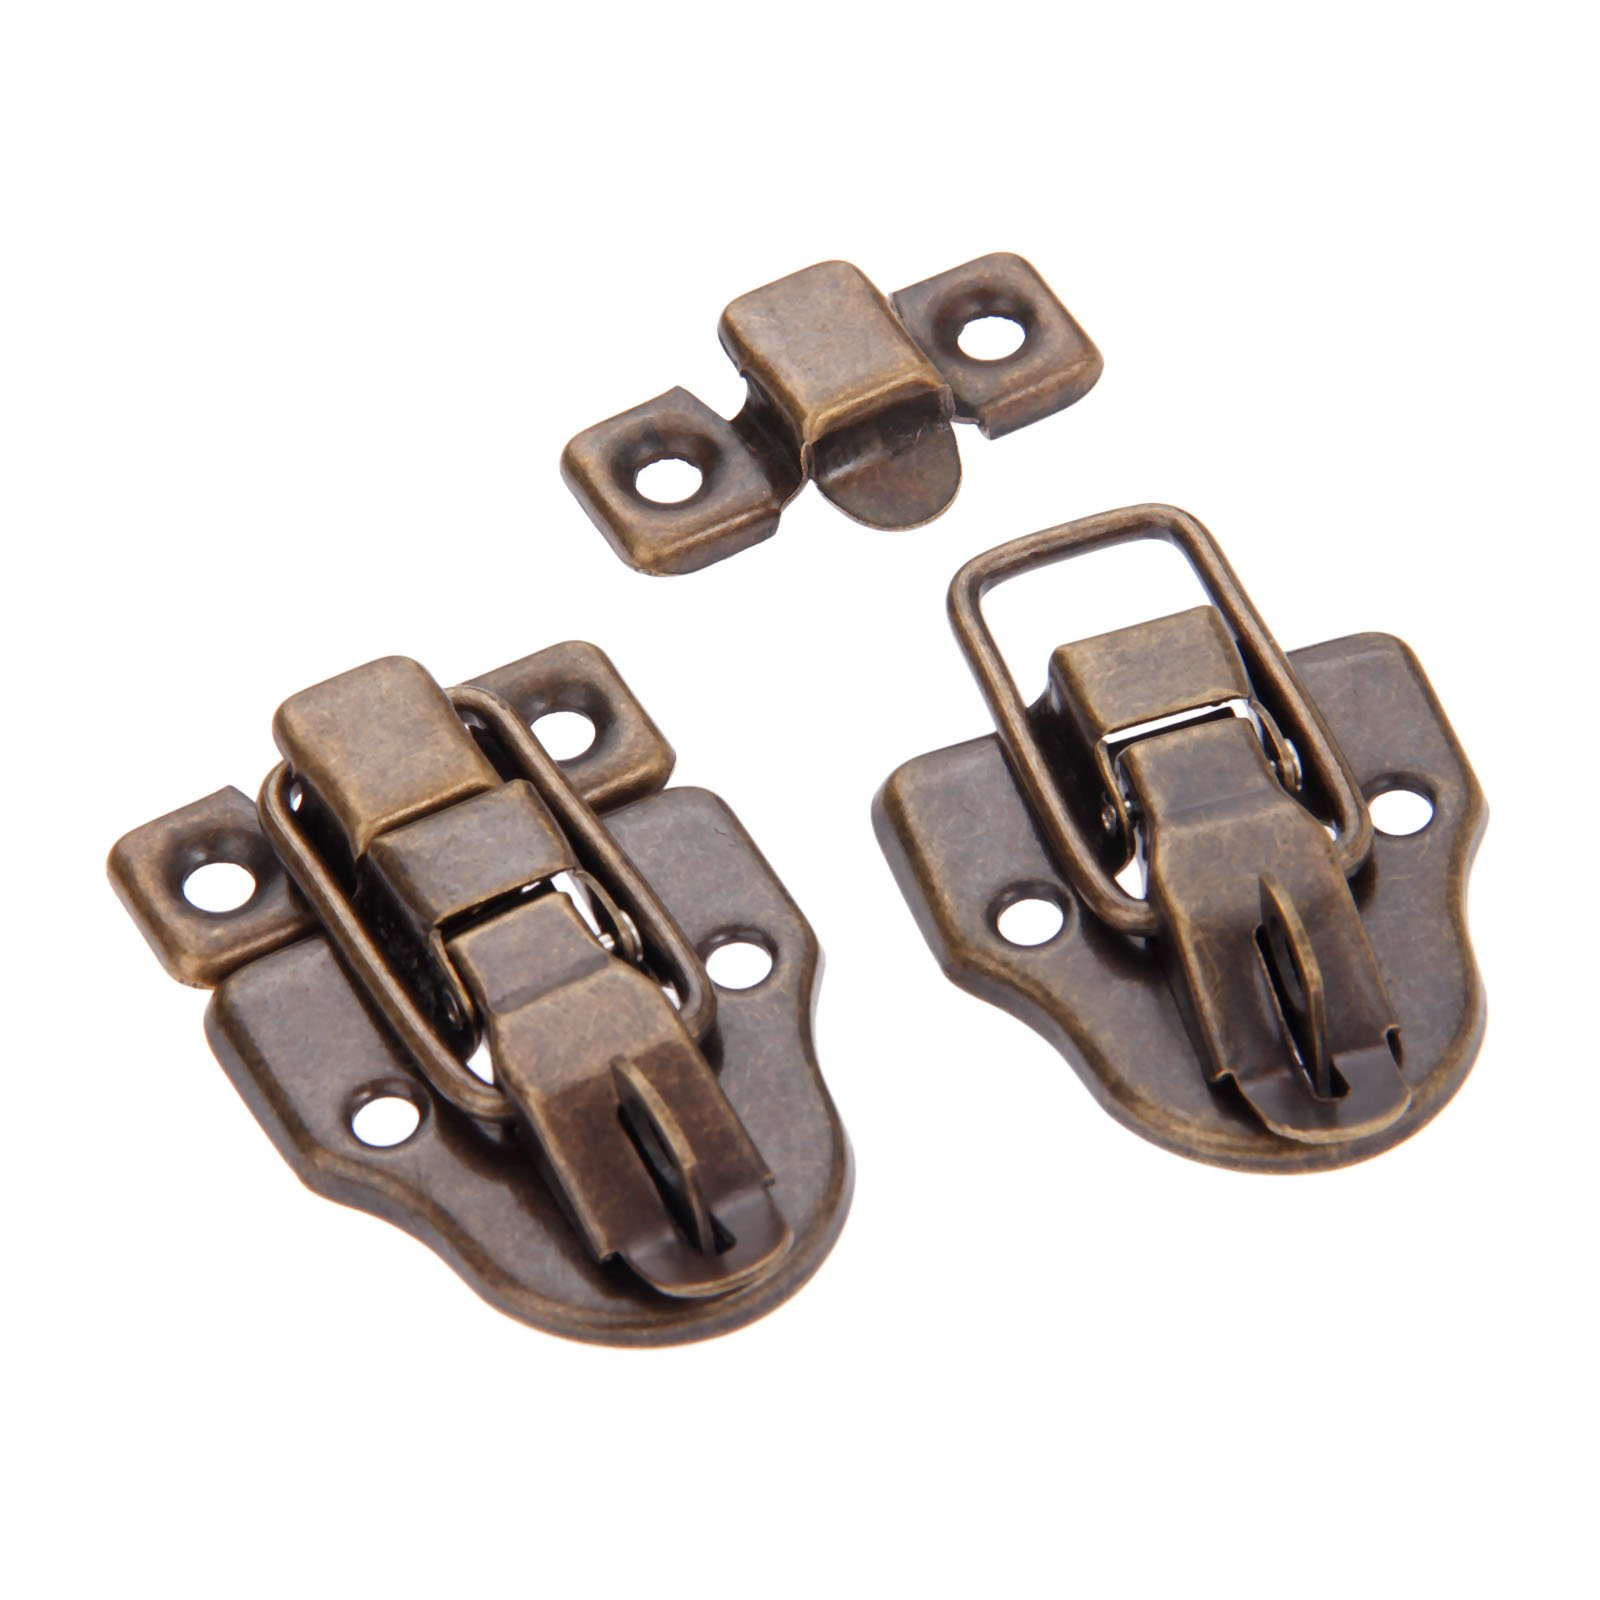 Dophee 10Pcs 2.32''x1.57'' Antique Bronze Retro Style Iron Toggle Fit Case Box Chest Trunk Latch Hasps by dophee (Image #5)